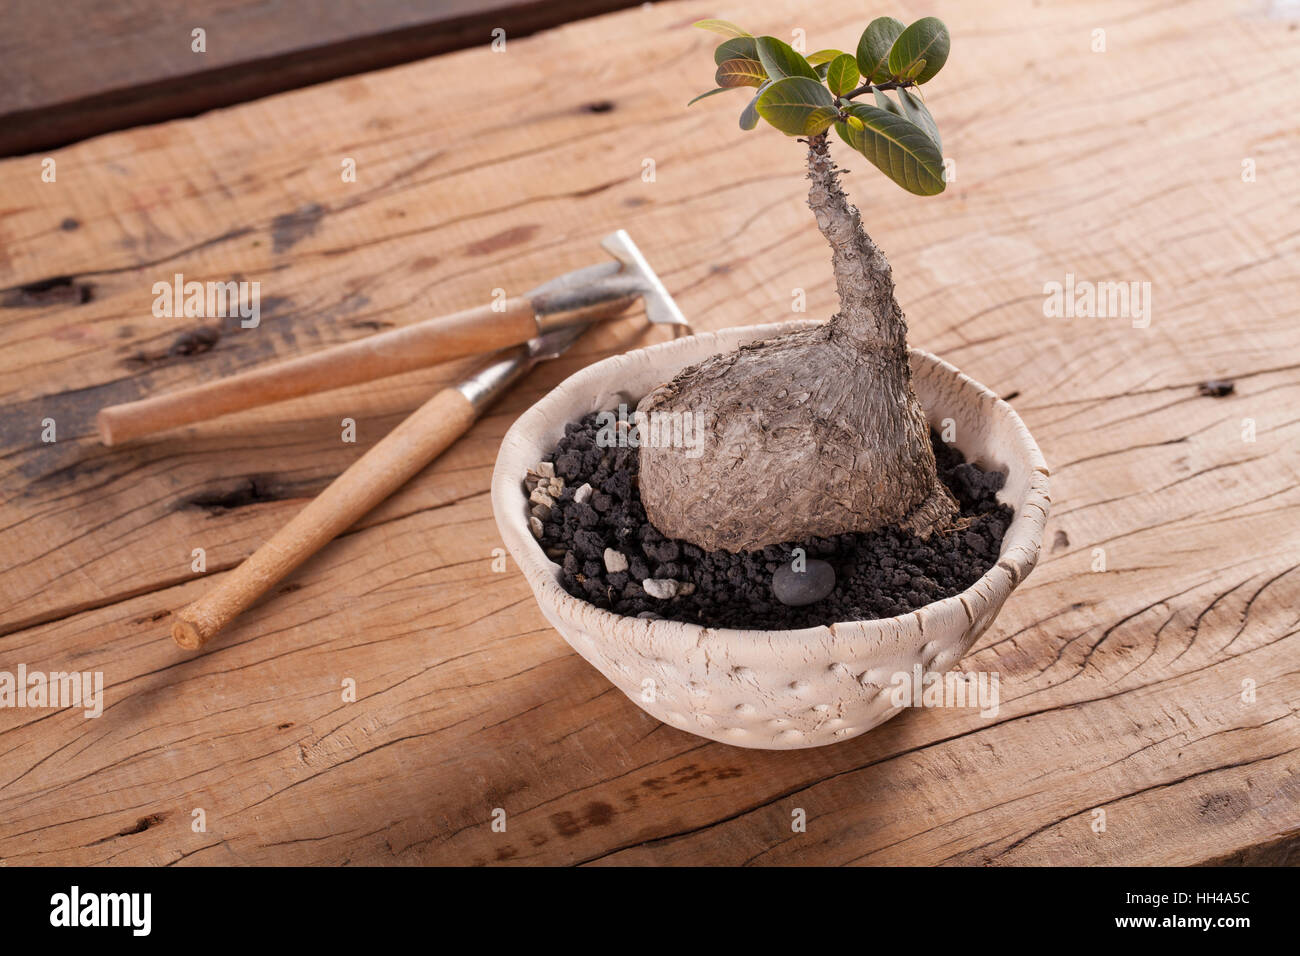 Mini Cactus Garden Put With Stone Arranged In Wide Pot Or Round Ceramic  Tray With Garden Tools